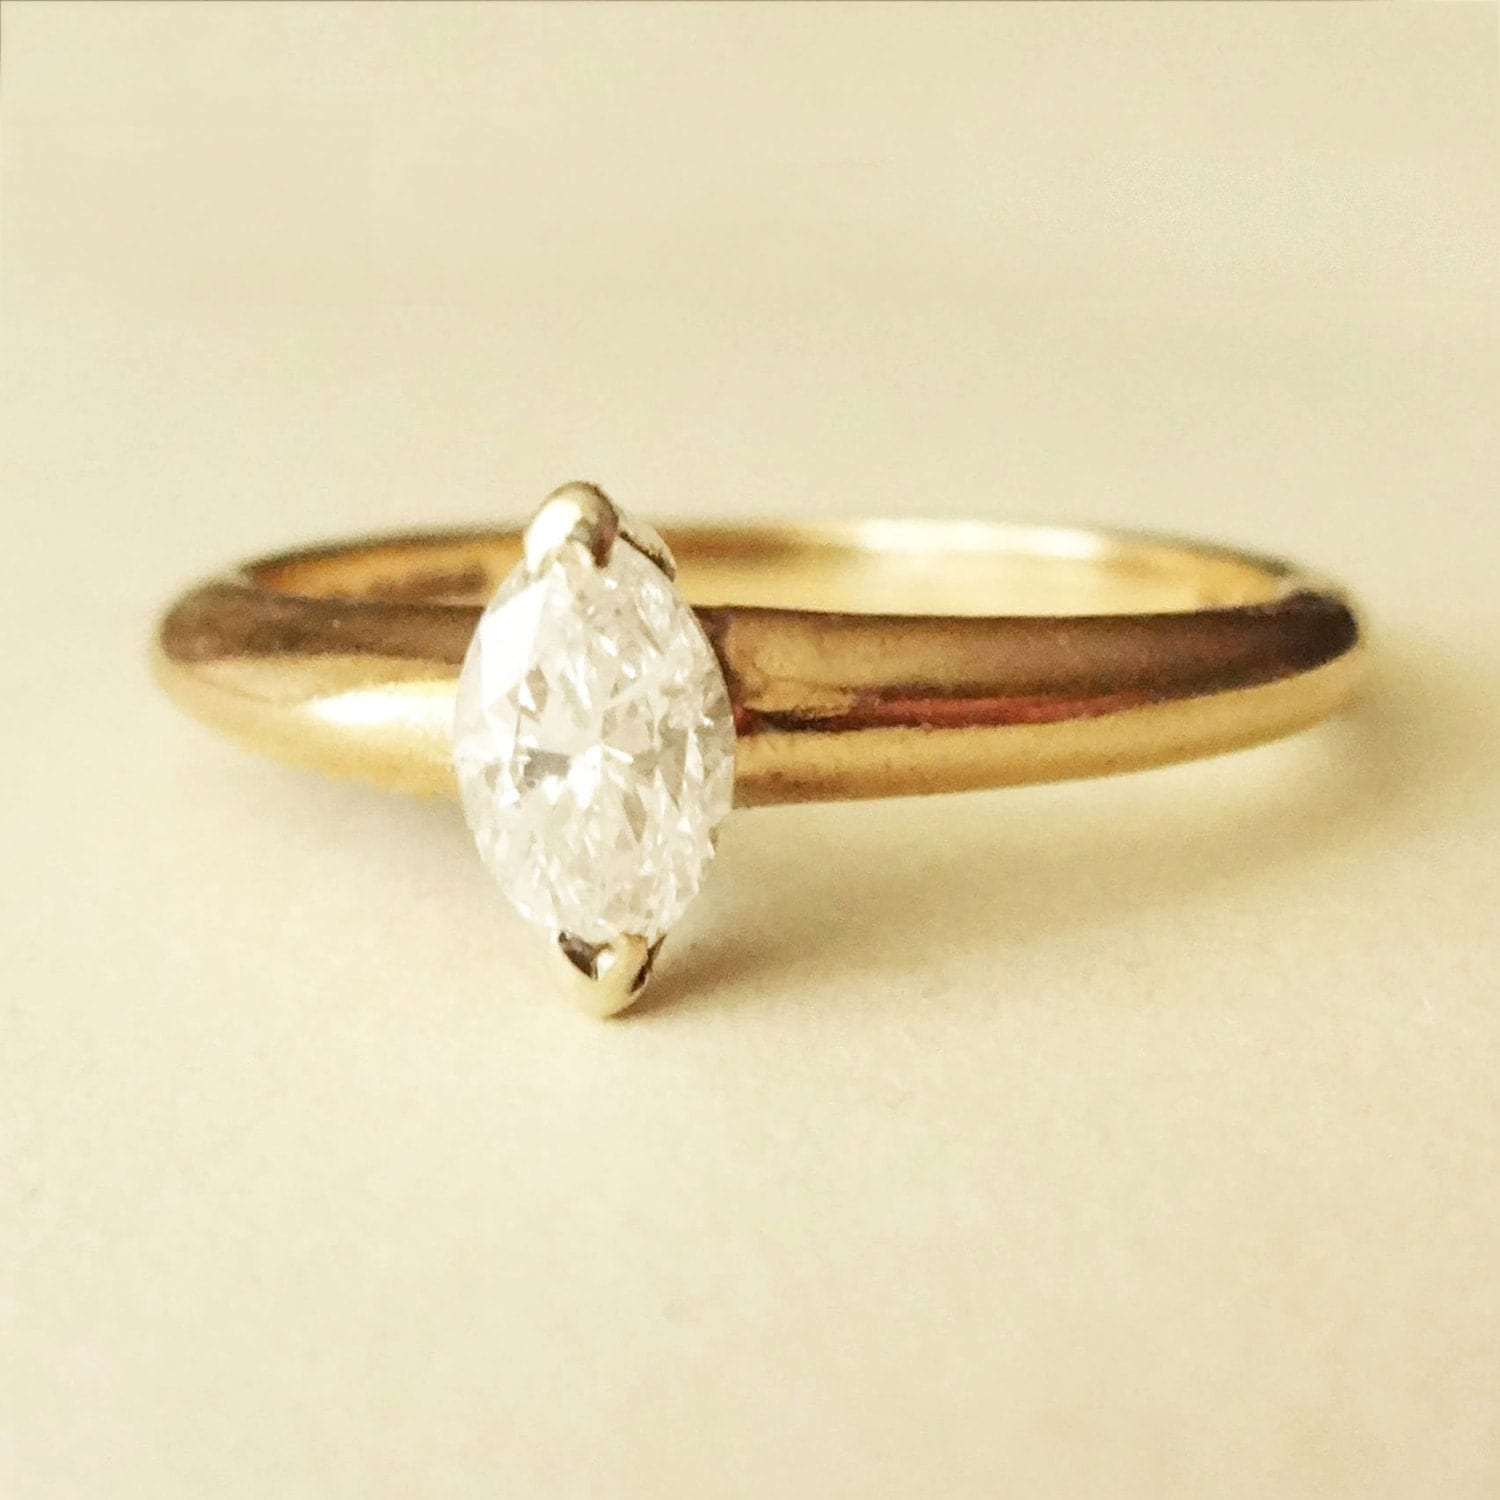 Vintage Marquise Cut 42 Carat Diamond Solitaire Engagement